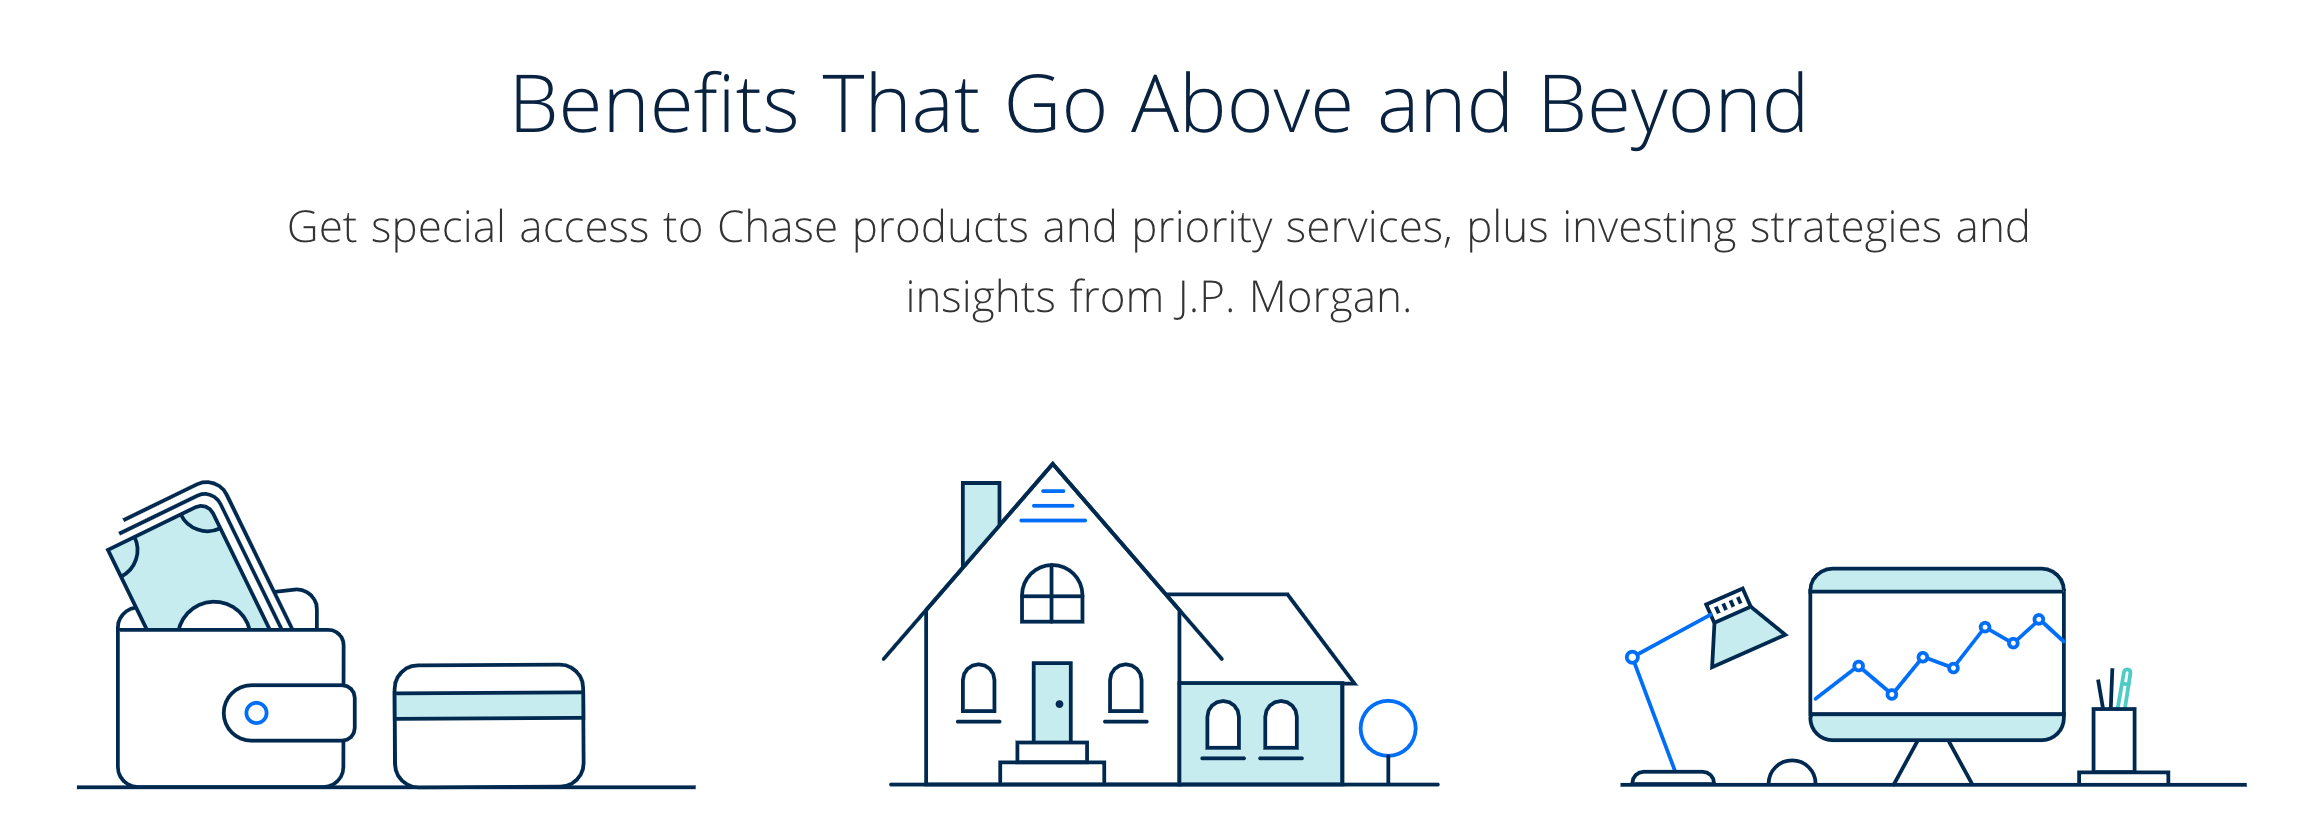 Chase Private Client Program - Benefits, How To Qualify & More [2019]